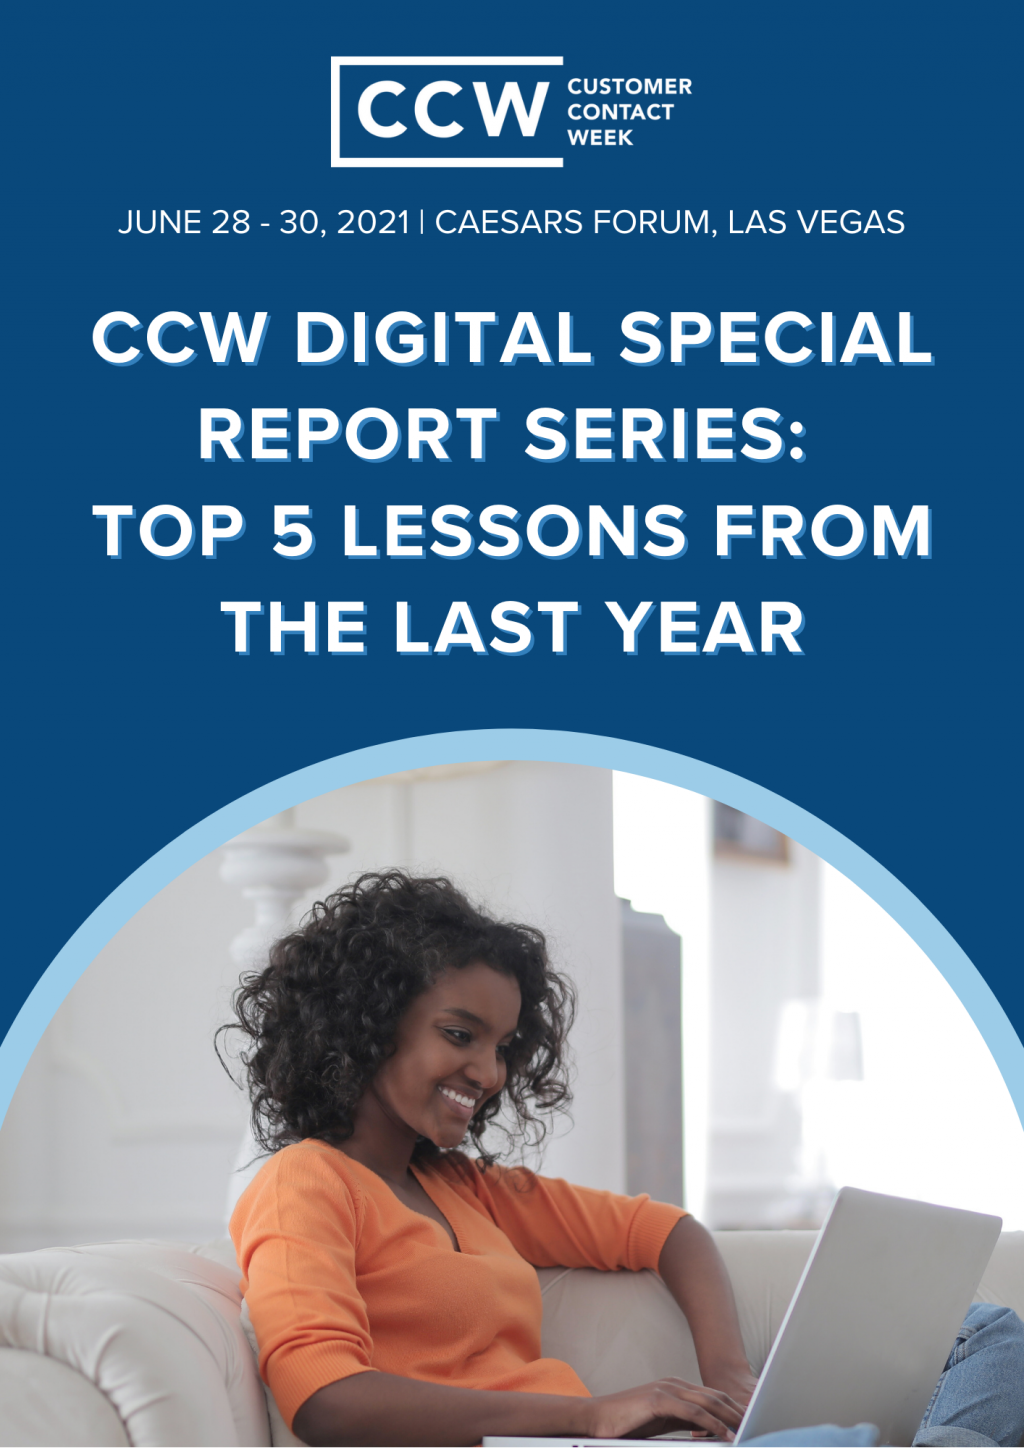 CCW Digital Special Report Series: Top 5 Lessons From the Last Year